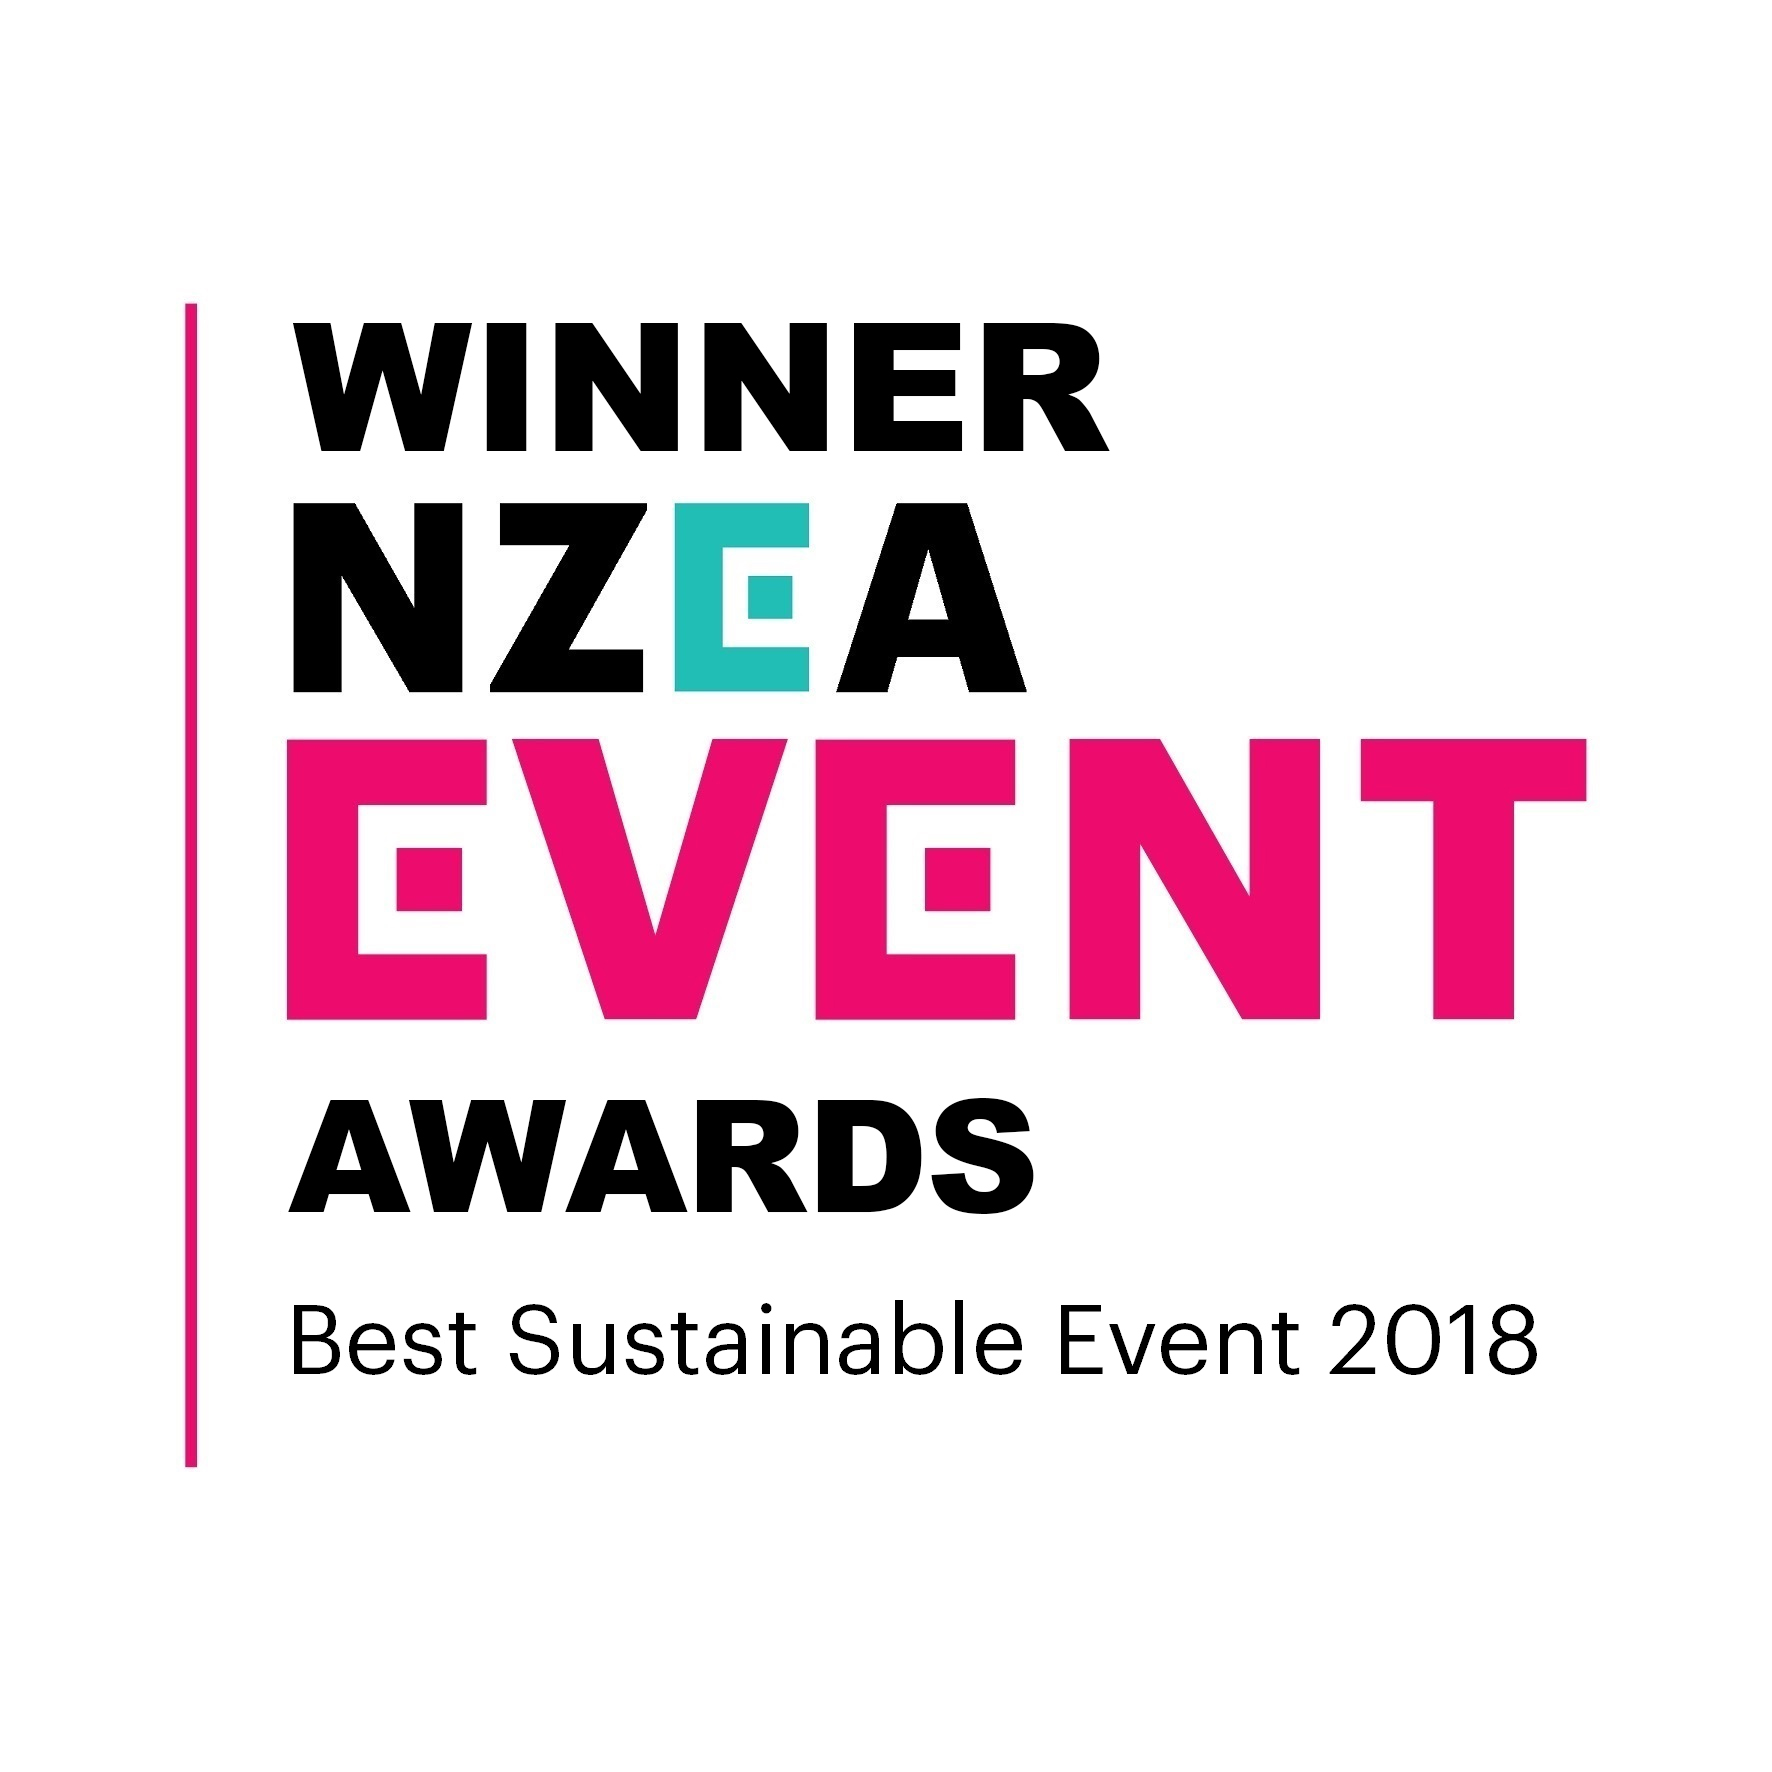 NZEA Event Awards-Signatures-Winner- Best Sustainable Event 2018.jpg